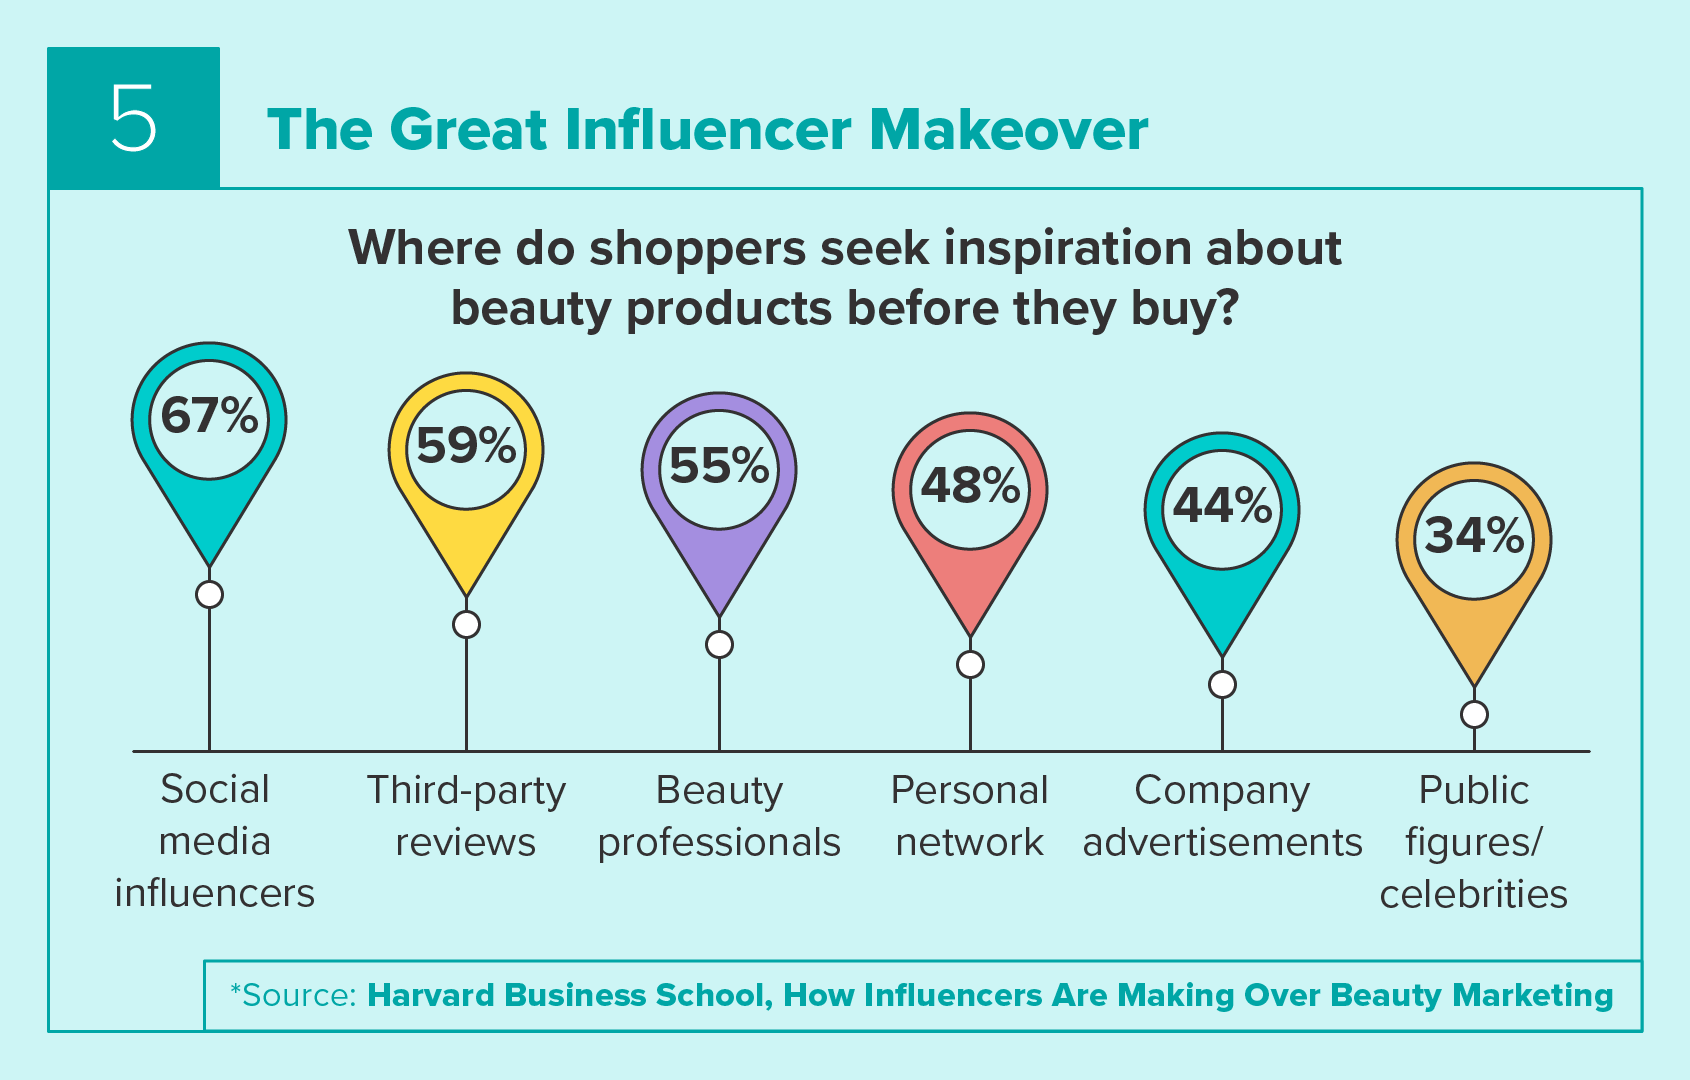 Where Shoppers Seek Inspiration About Beauty Products